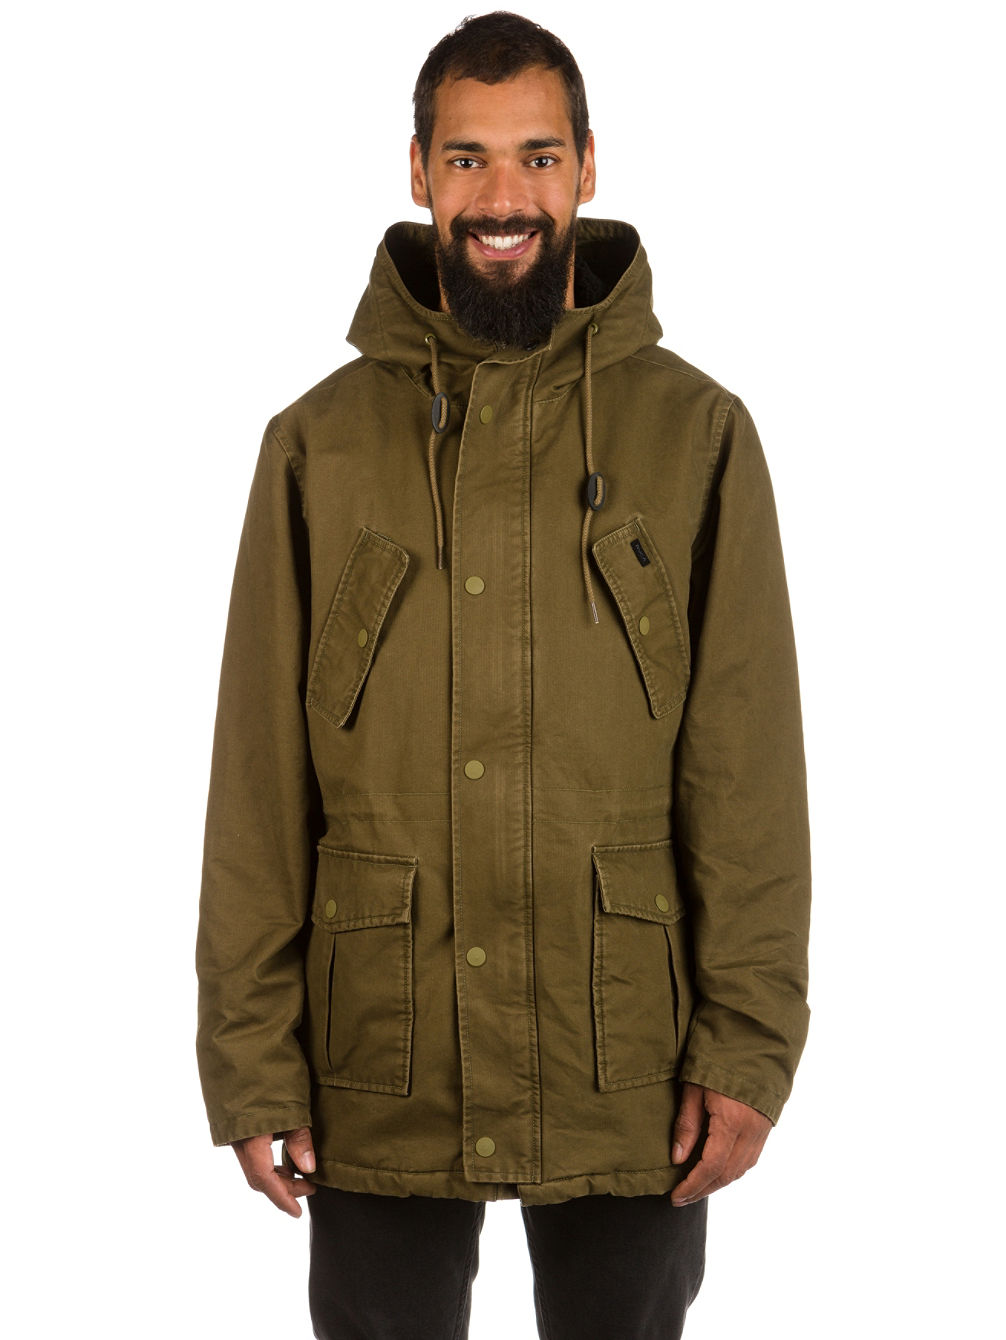 310d9bfc85 Buy RVCA Ground Control Parka online at Blue Tomato